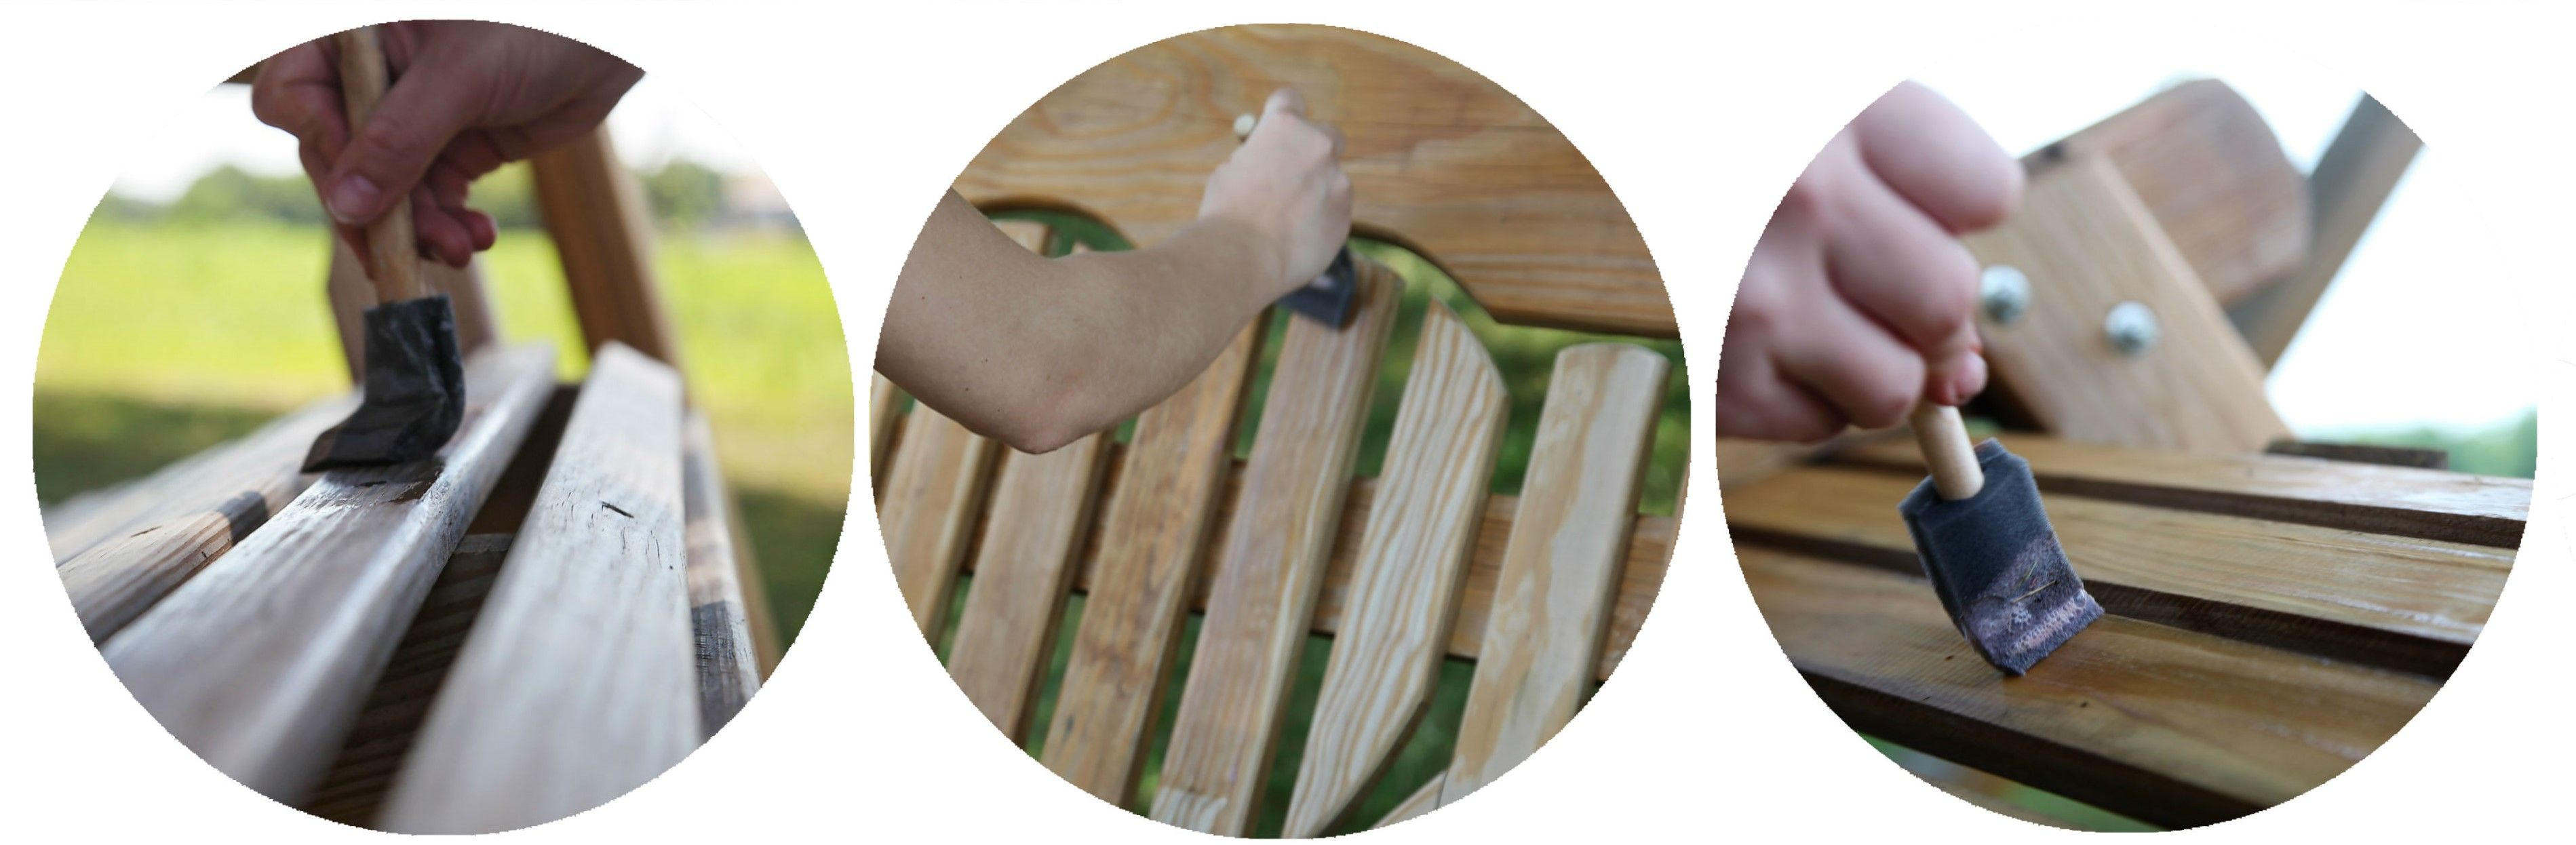 Pin on Handcrafted Home